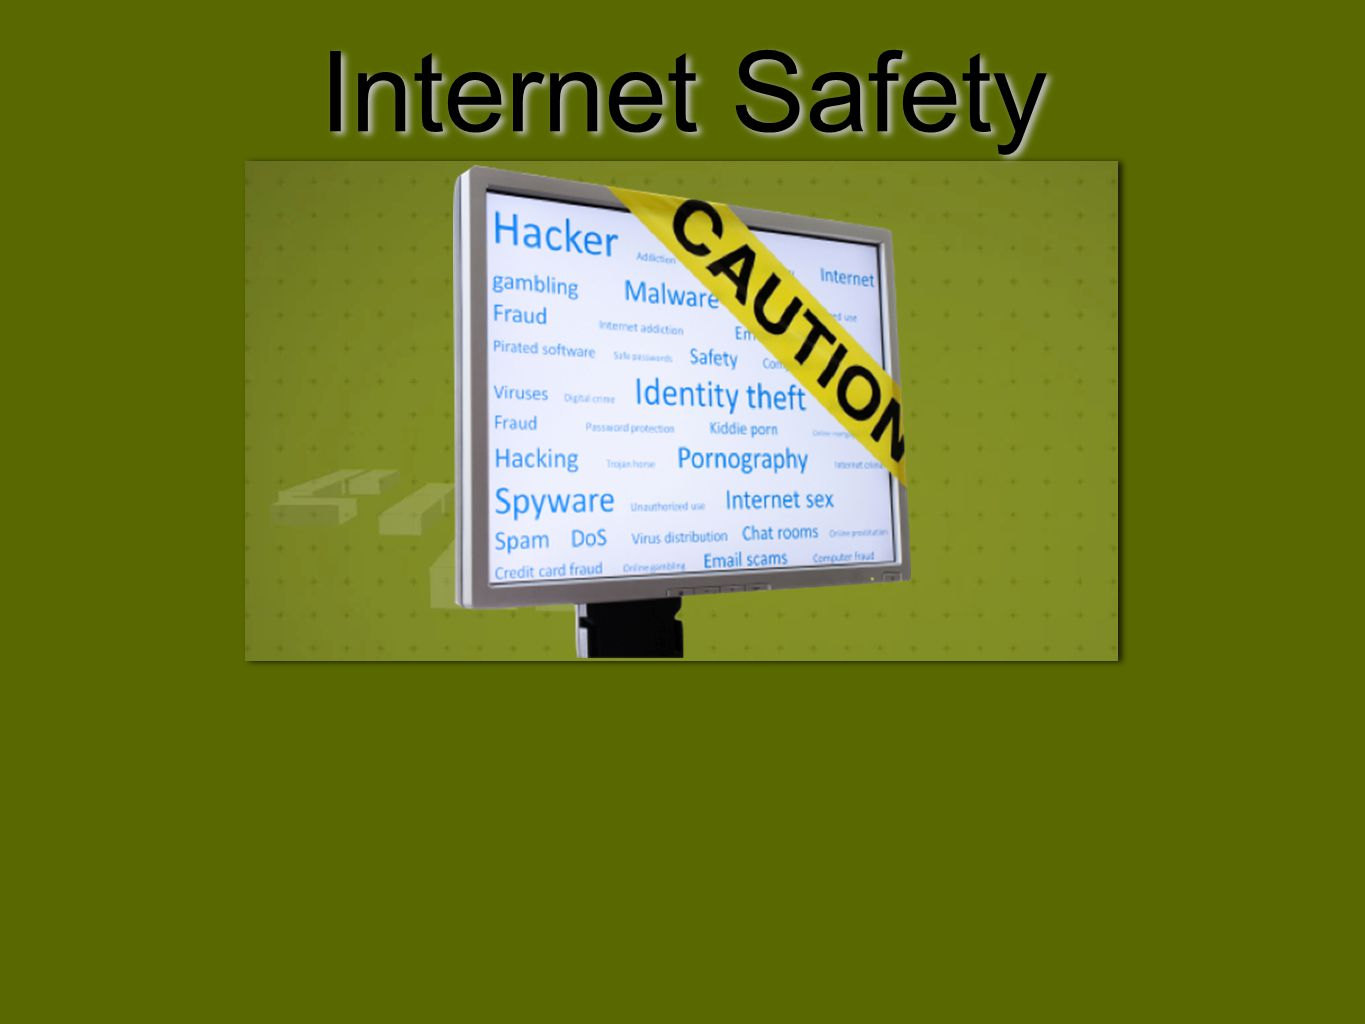 Why Internet Safety?